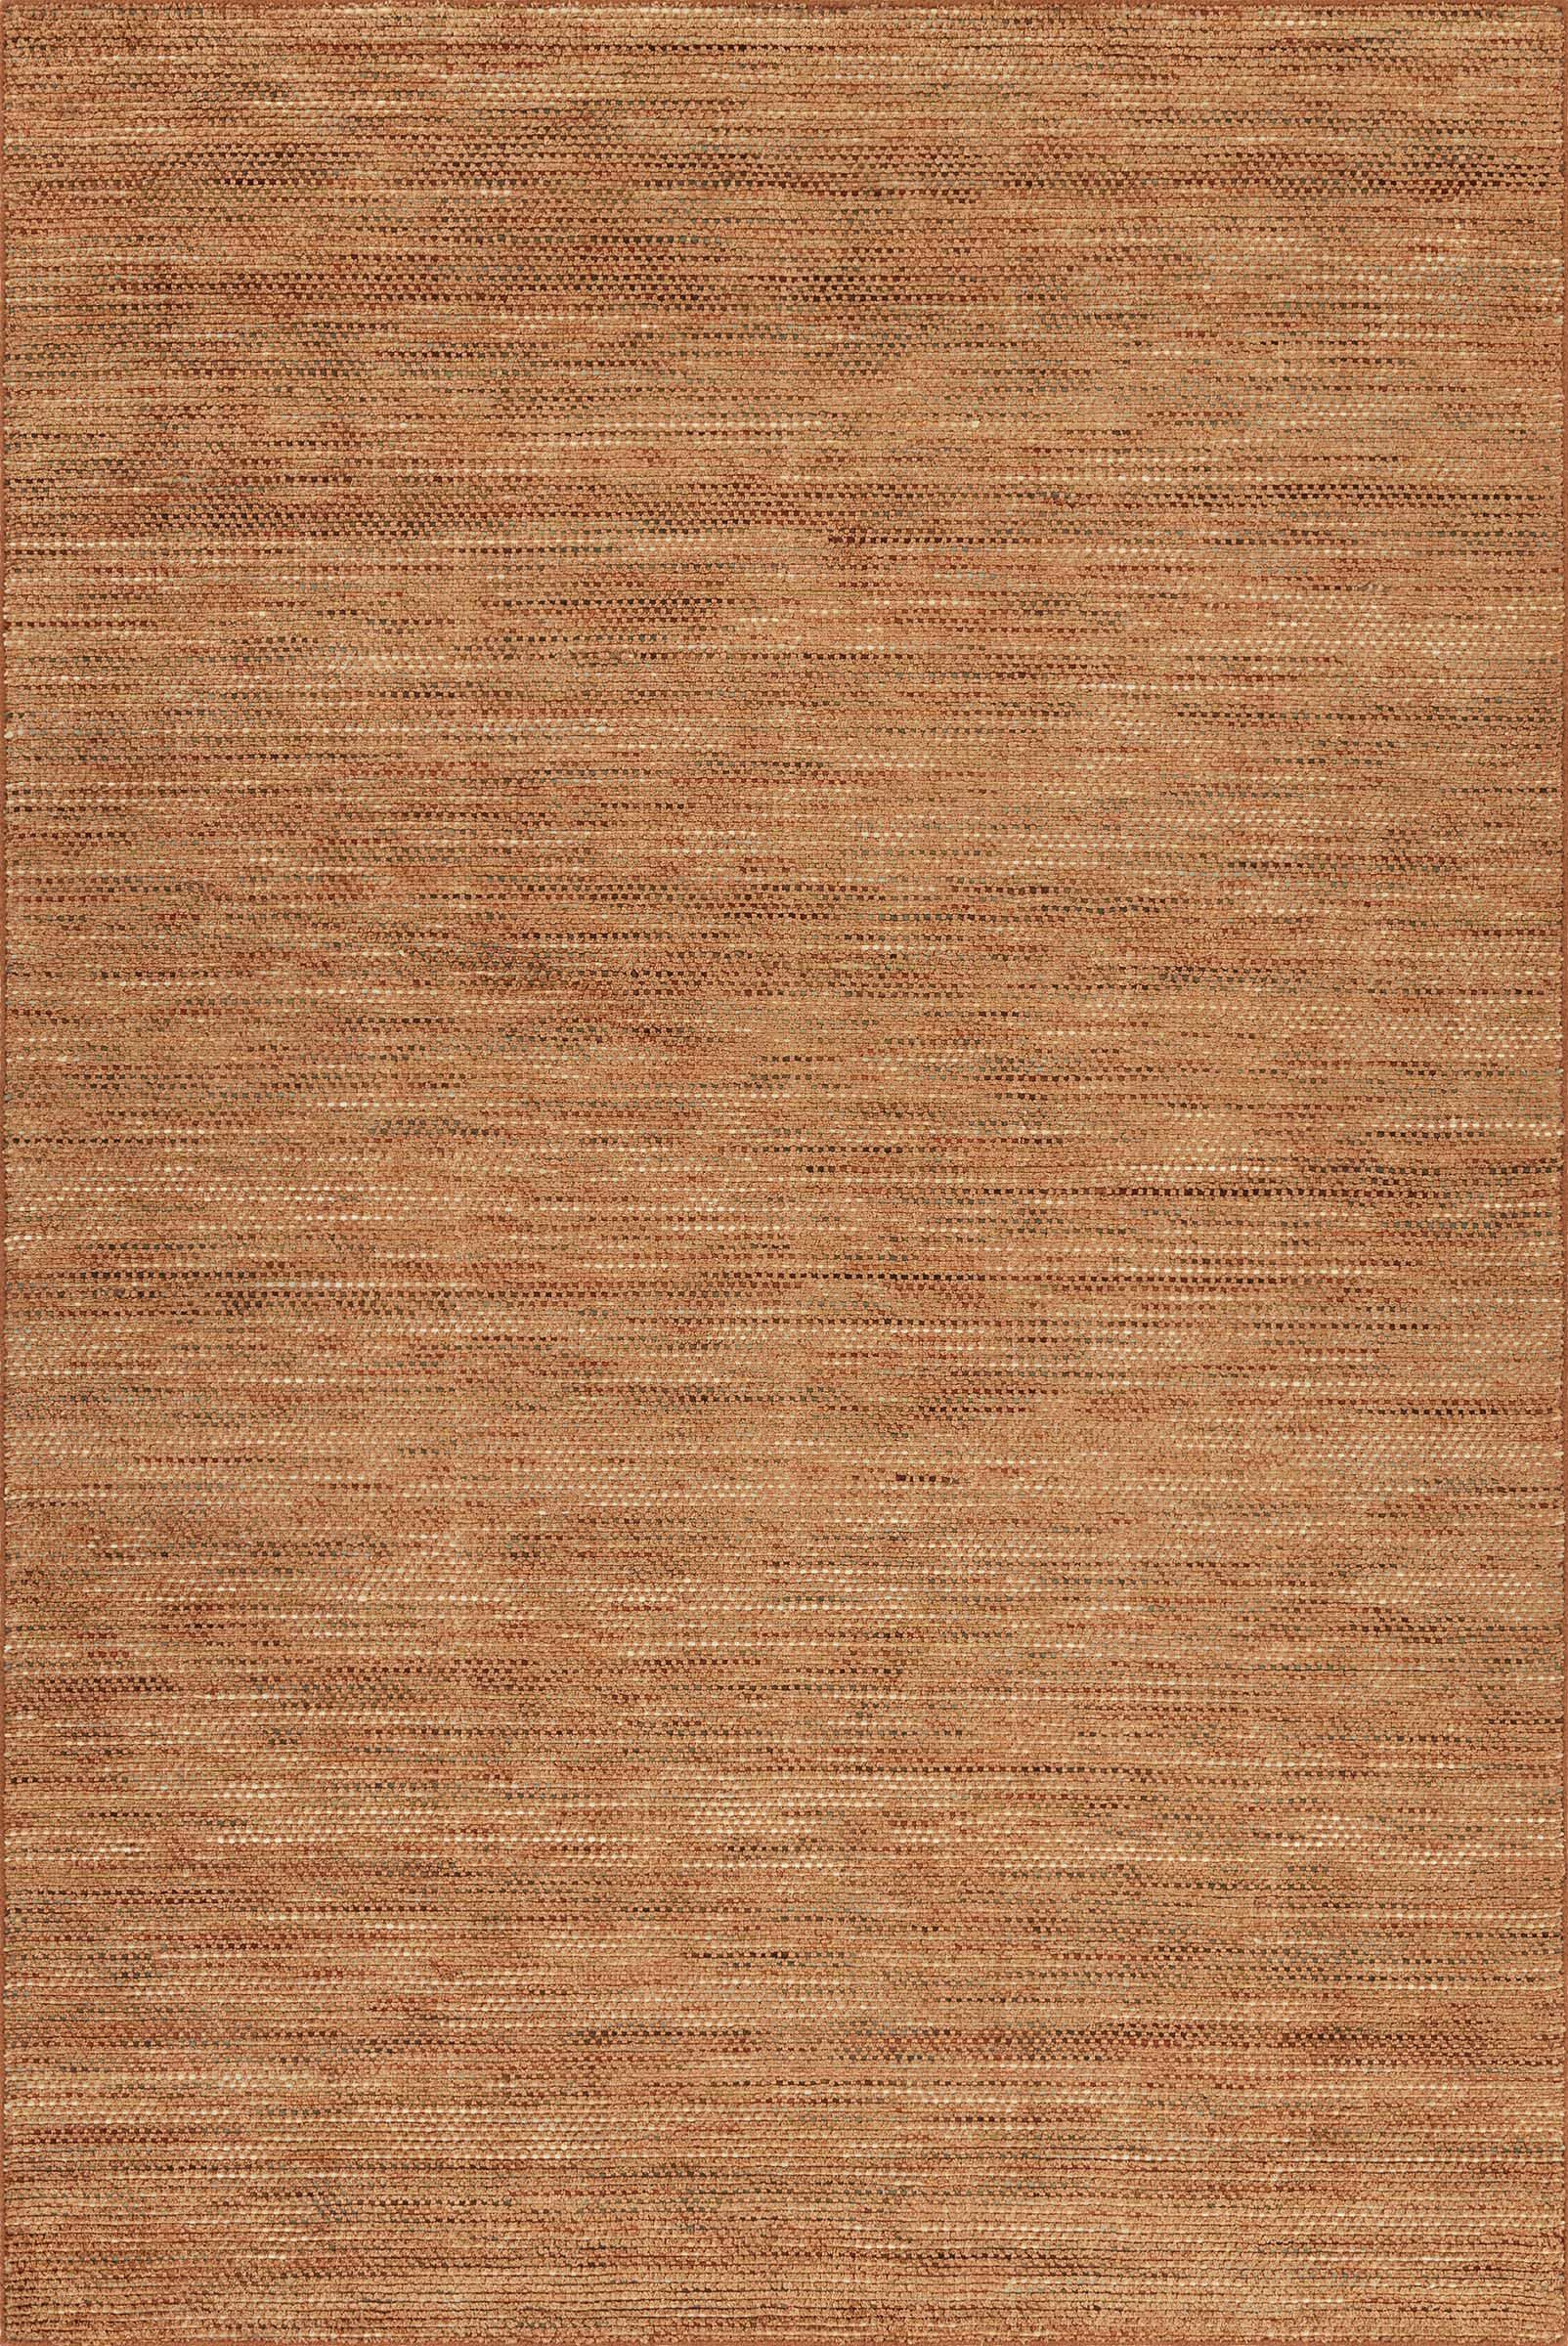 Minh Hand-Woven Spice Area Rug Rug Size: Rectangle 9' x 13'